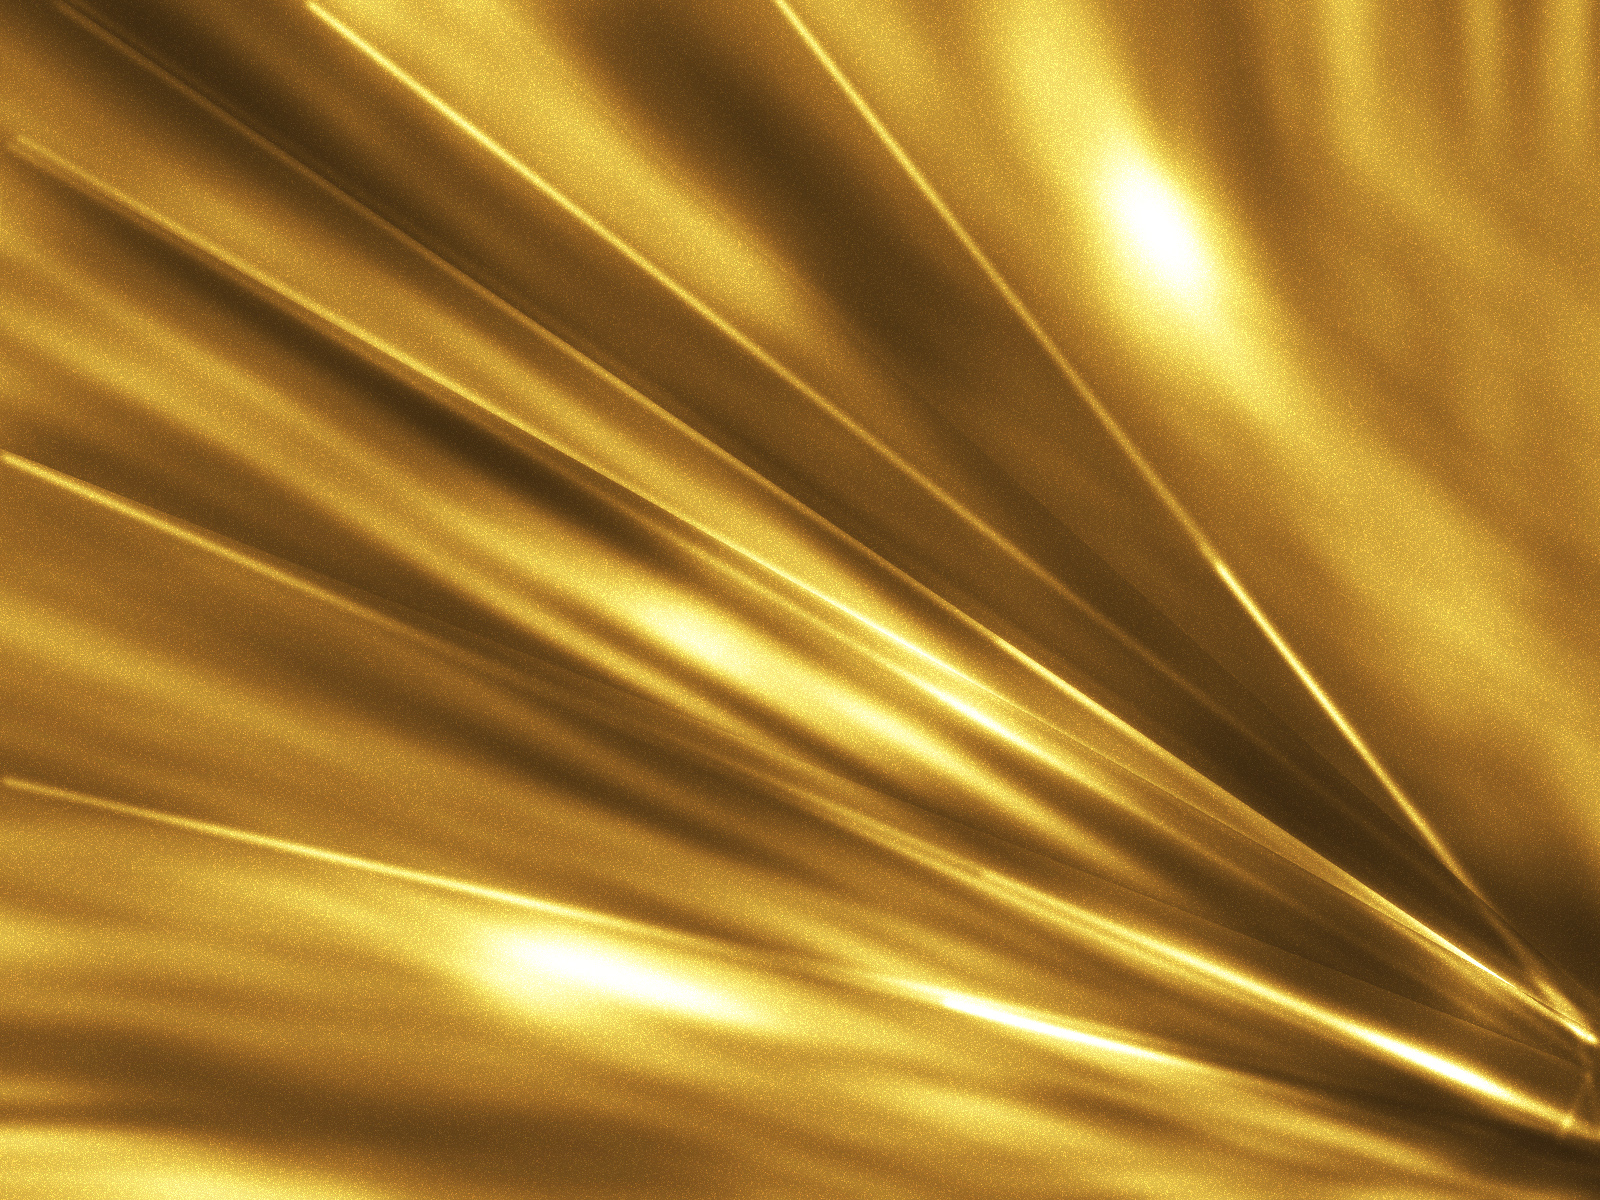 wallpaper PC wallpaper gold satin 1600x1200